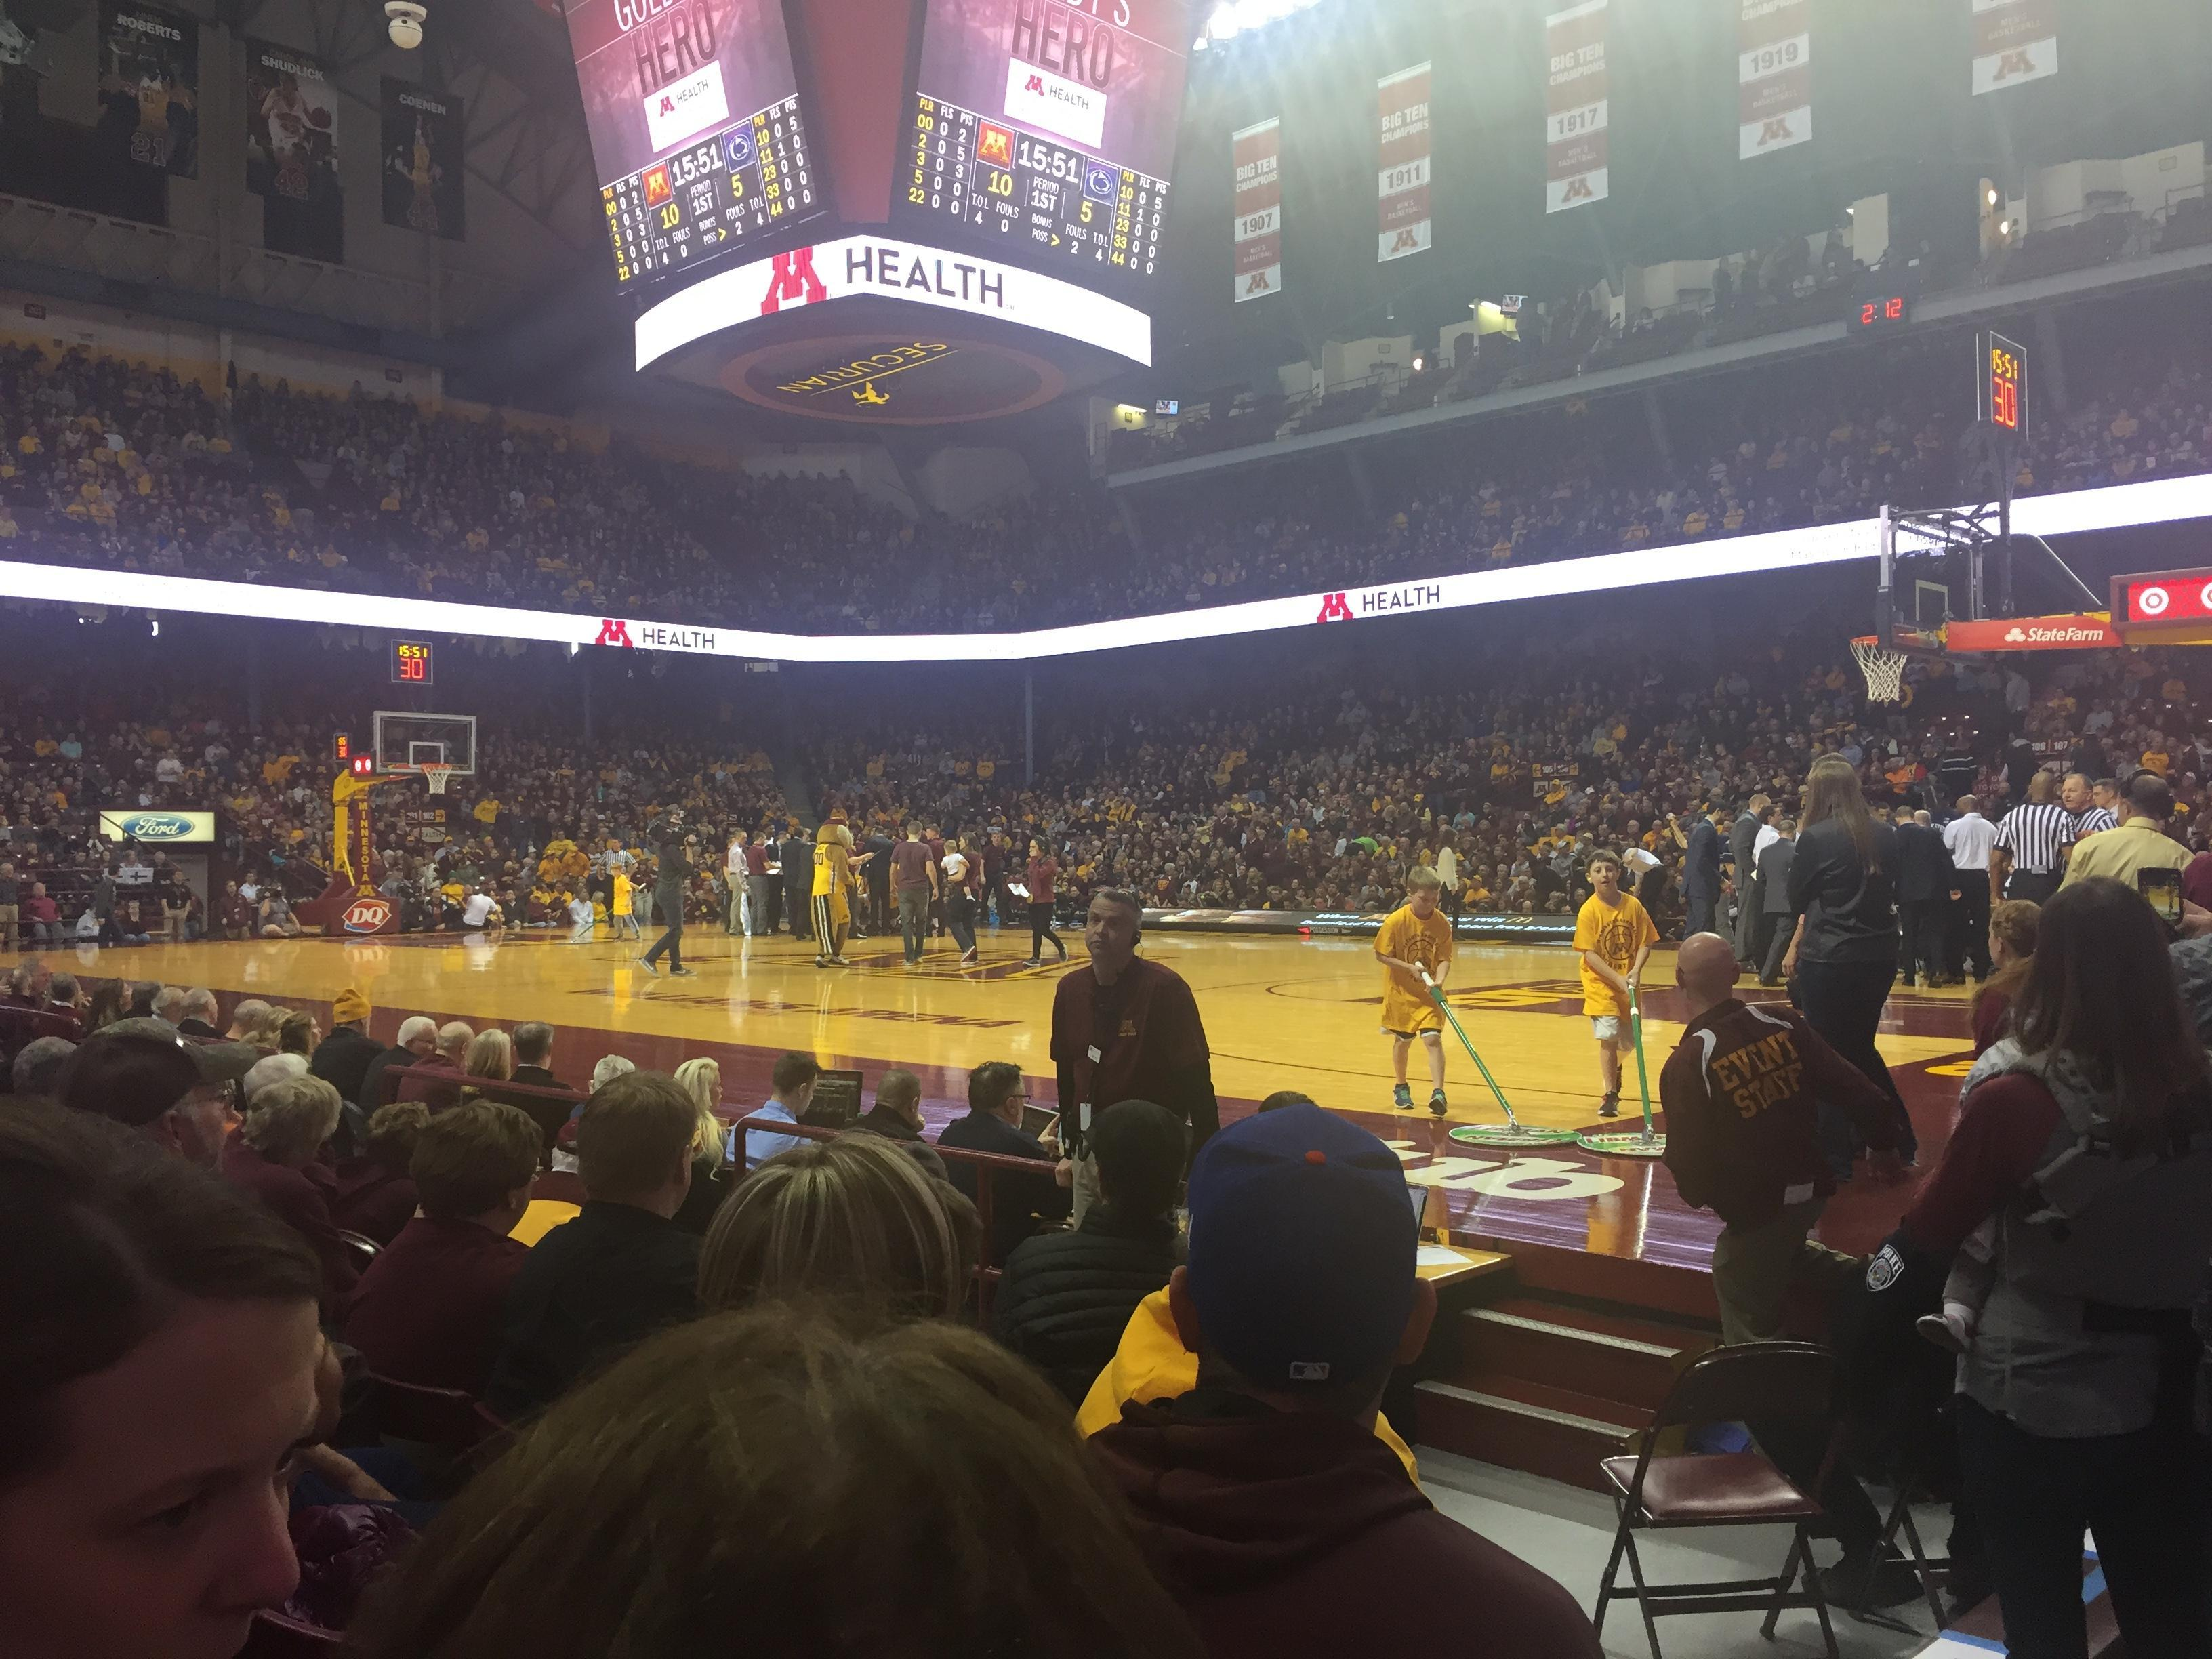 Williams Arena Section 114 Row 5 Seat 1